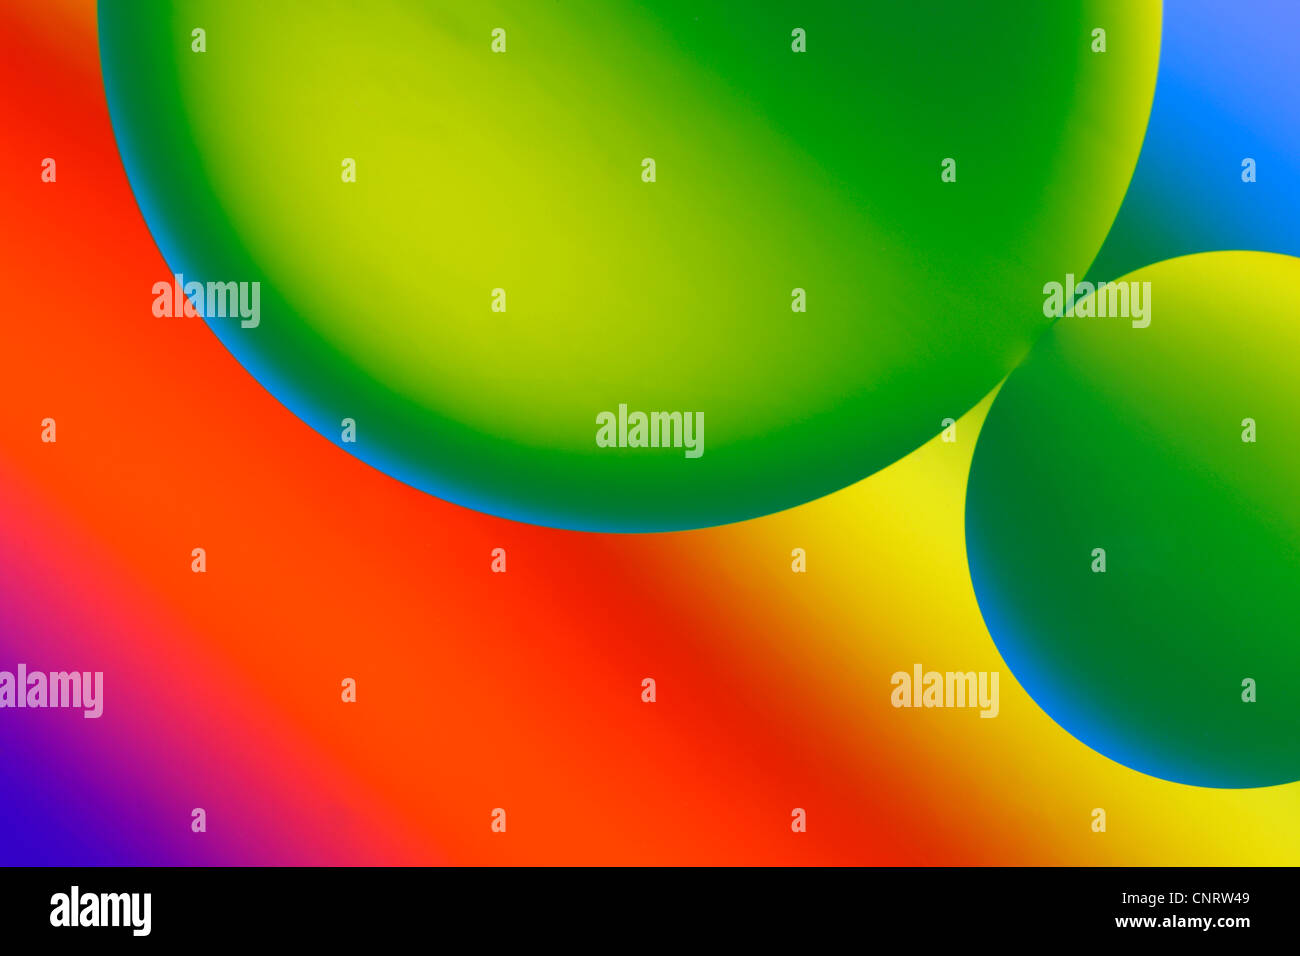 Oil bubbles abtract image. - Stock Image